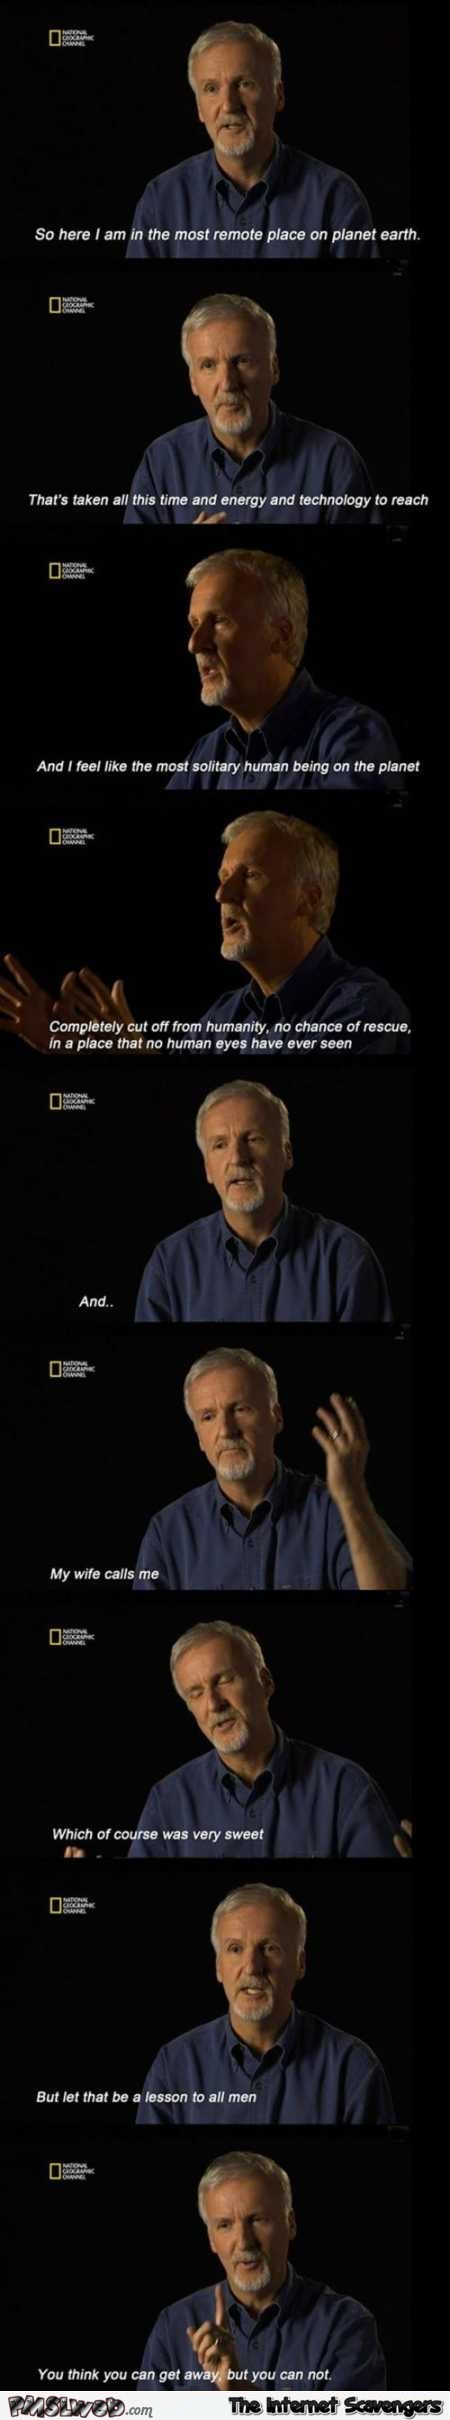 Funny James Cameron meme about women @PMSLweb.com